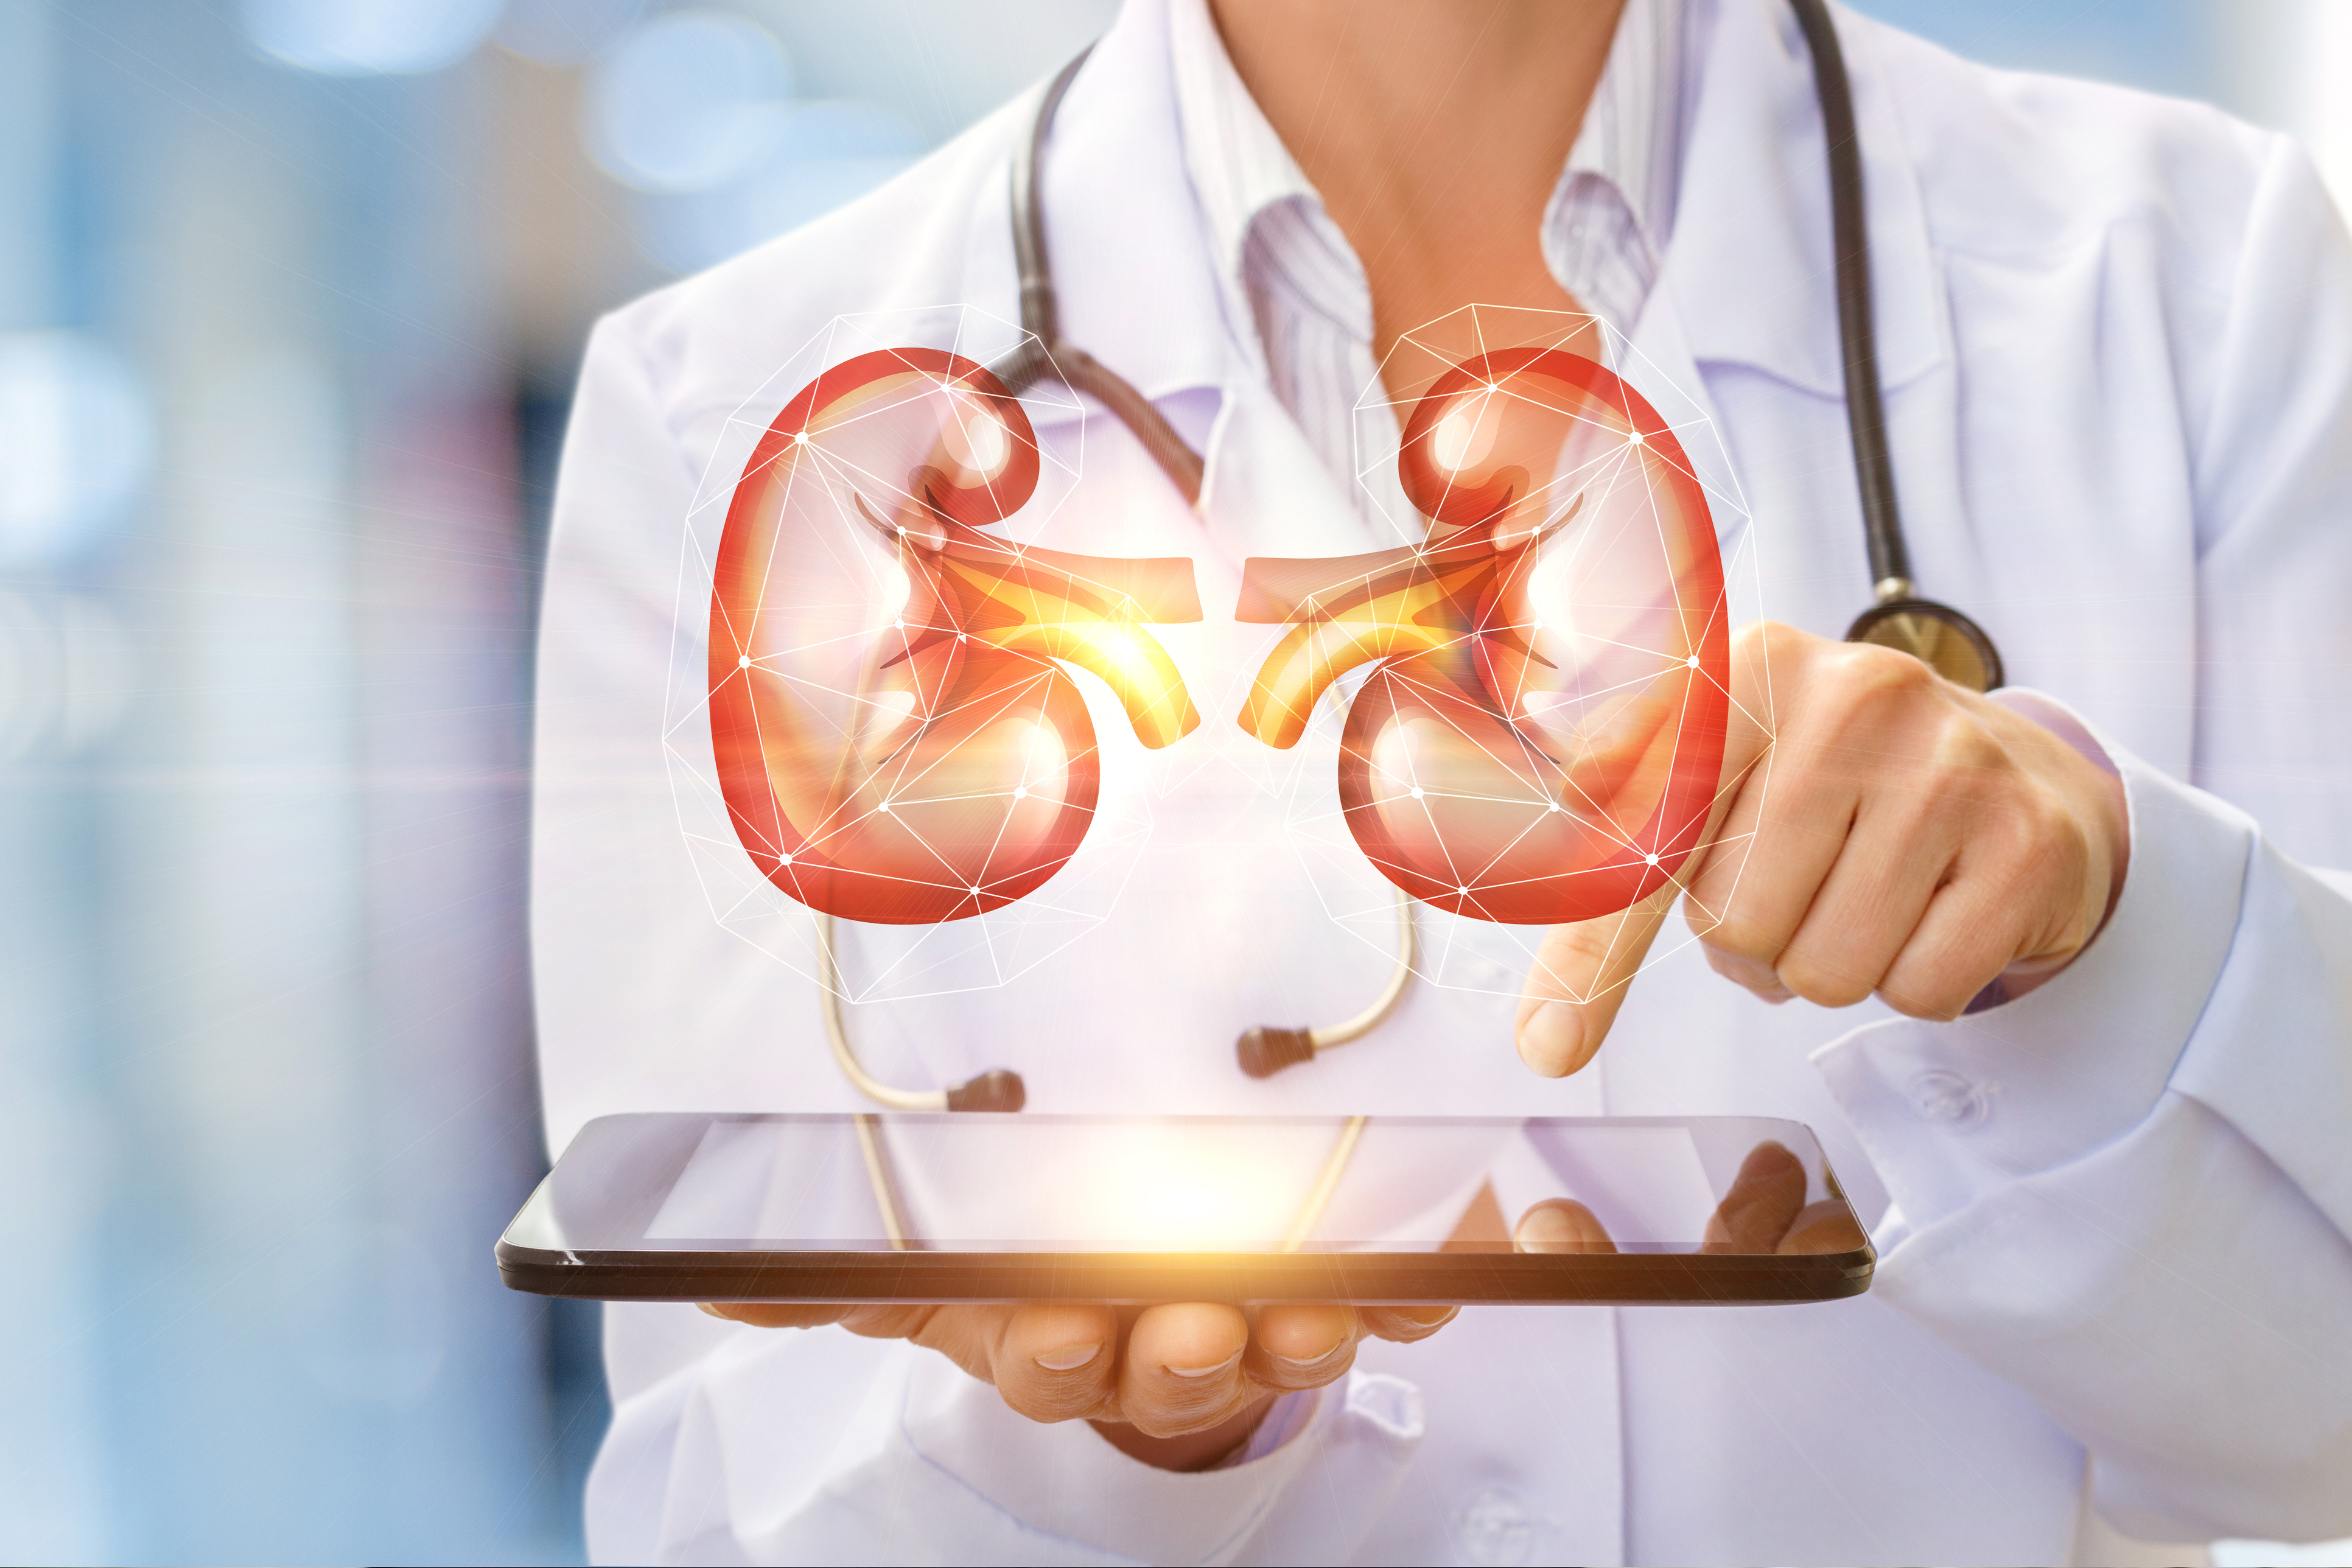 Have You Been to a Kidney Doctor (Nephrologist)?